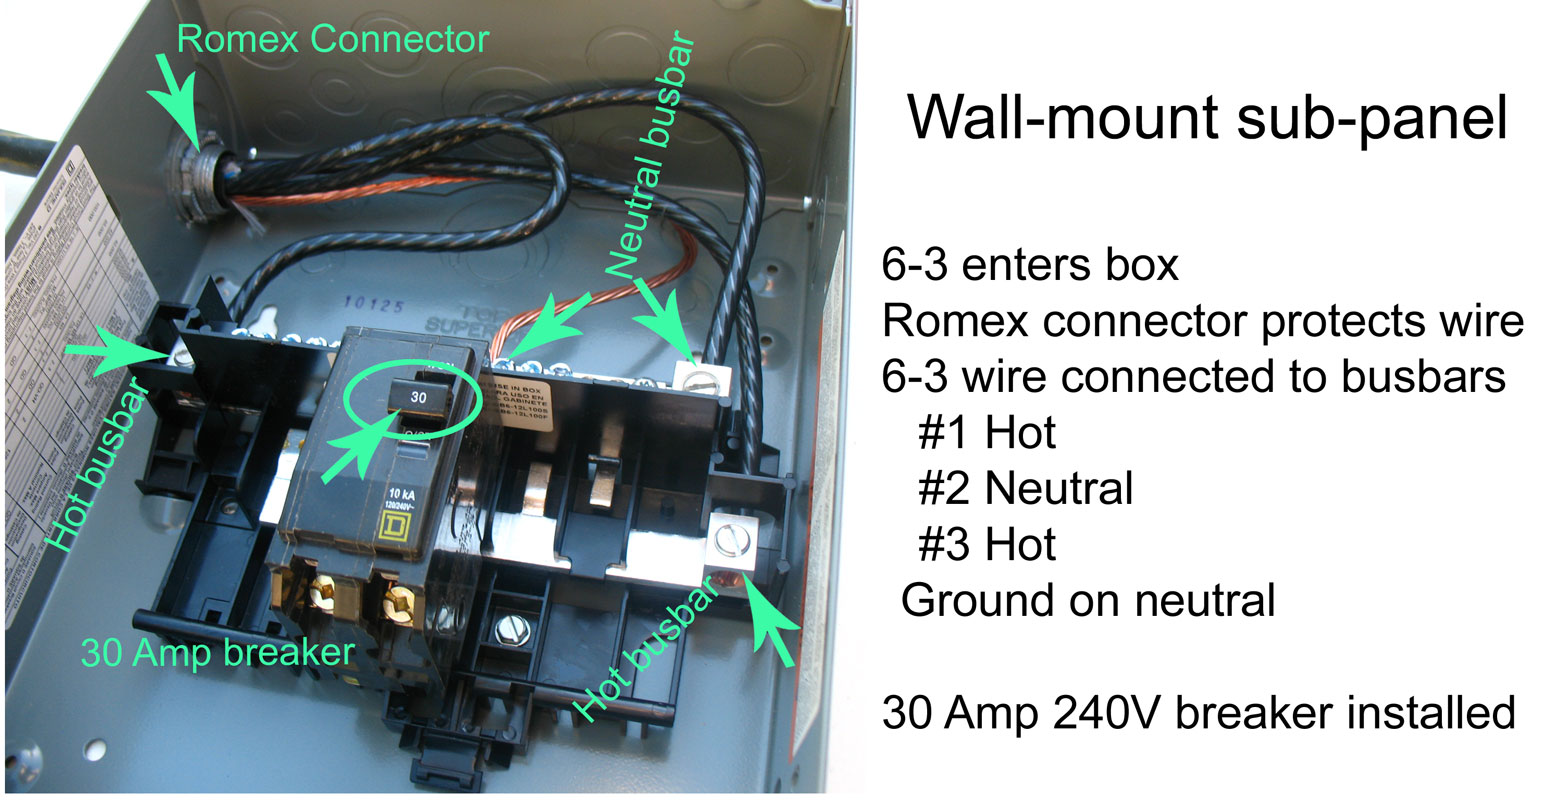 Wiring A Subpanel With 1 Hot Electrical Diagrams To Circuit Breakers How Wire Siemens Sub Panel From Main